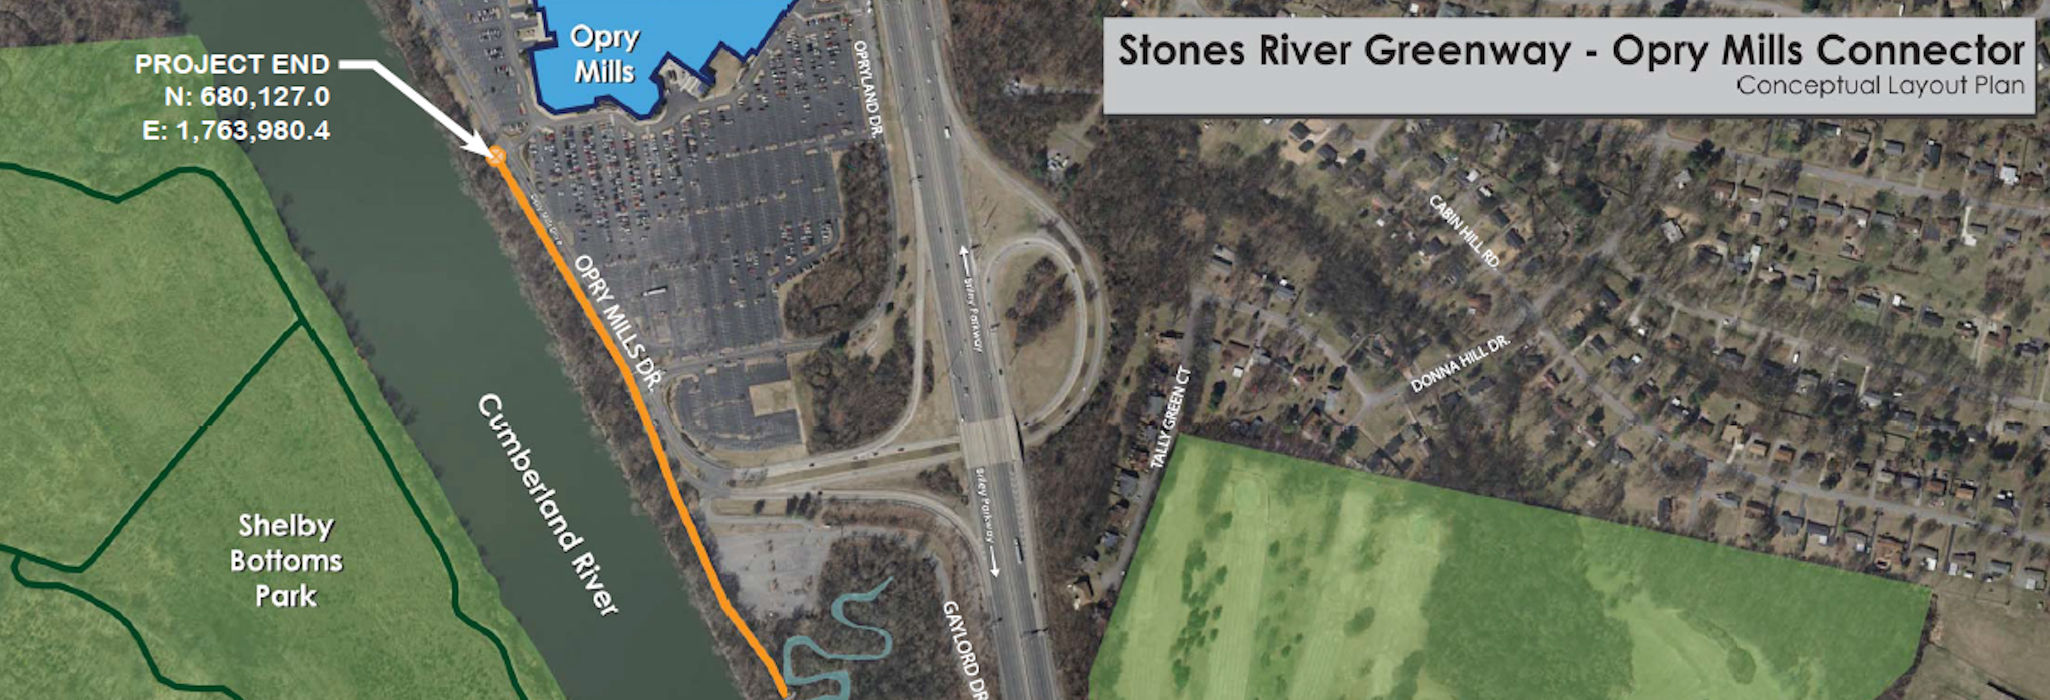 Stones River Greenway - Opry Mills Connector - Conceptual Layout Plan